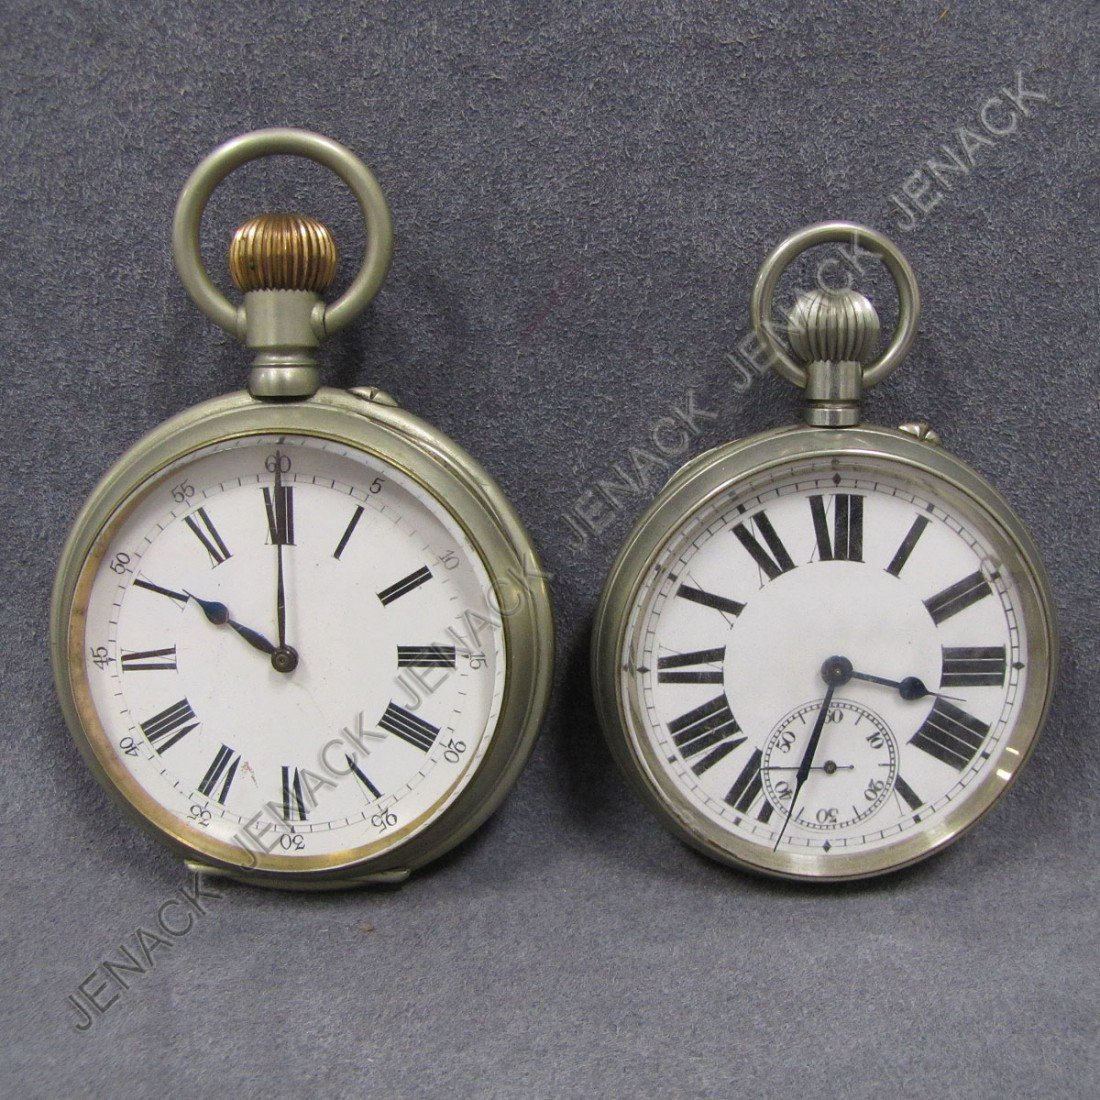 21: LOT (2) VINTAGE SWISS OVERSIZED POCKET WATCHES